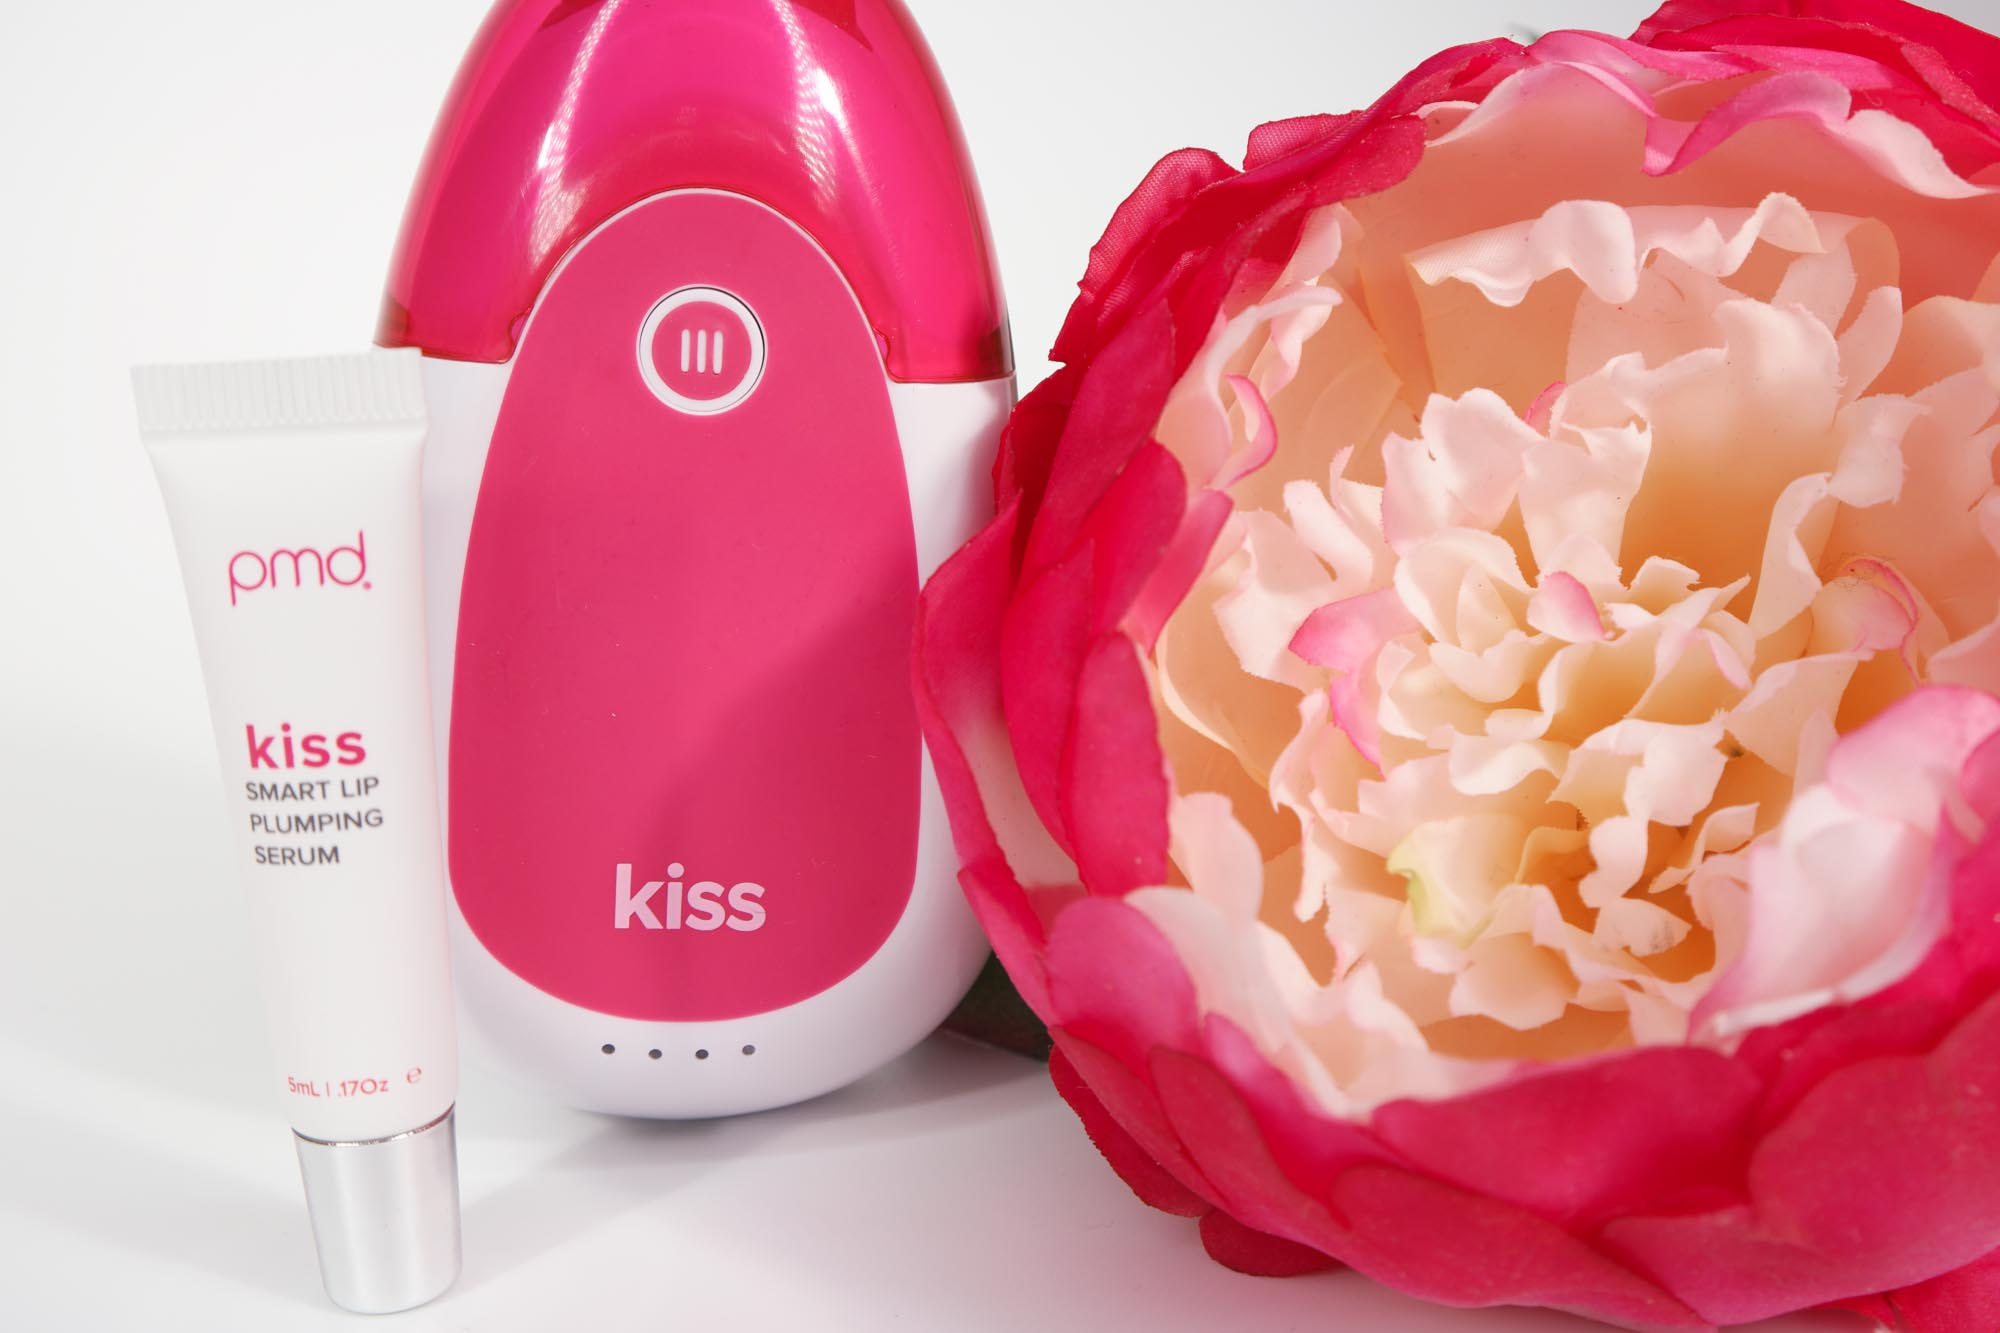 Natural Plumped Lips with PMD Kiss